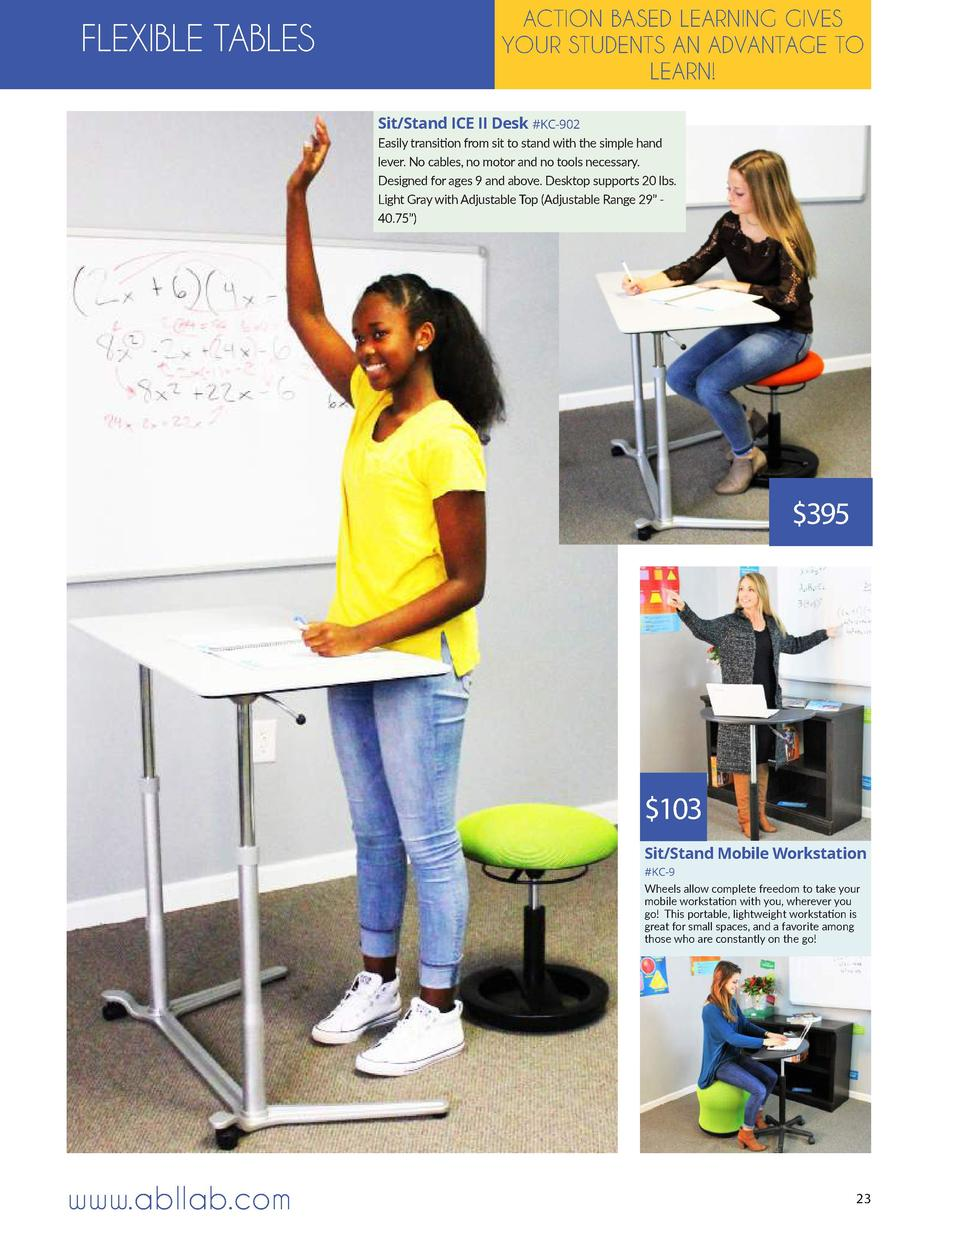 FLEXIBLE TABLES  ACTION BASED LEARNING GIVES YOUR STUDENTS AN ADVANTAGE TO LEARN  Sit Stand ICE II Desk  KC-902 Easily tra...